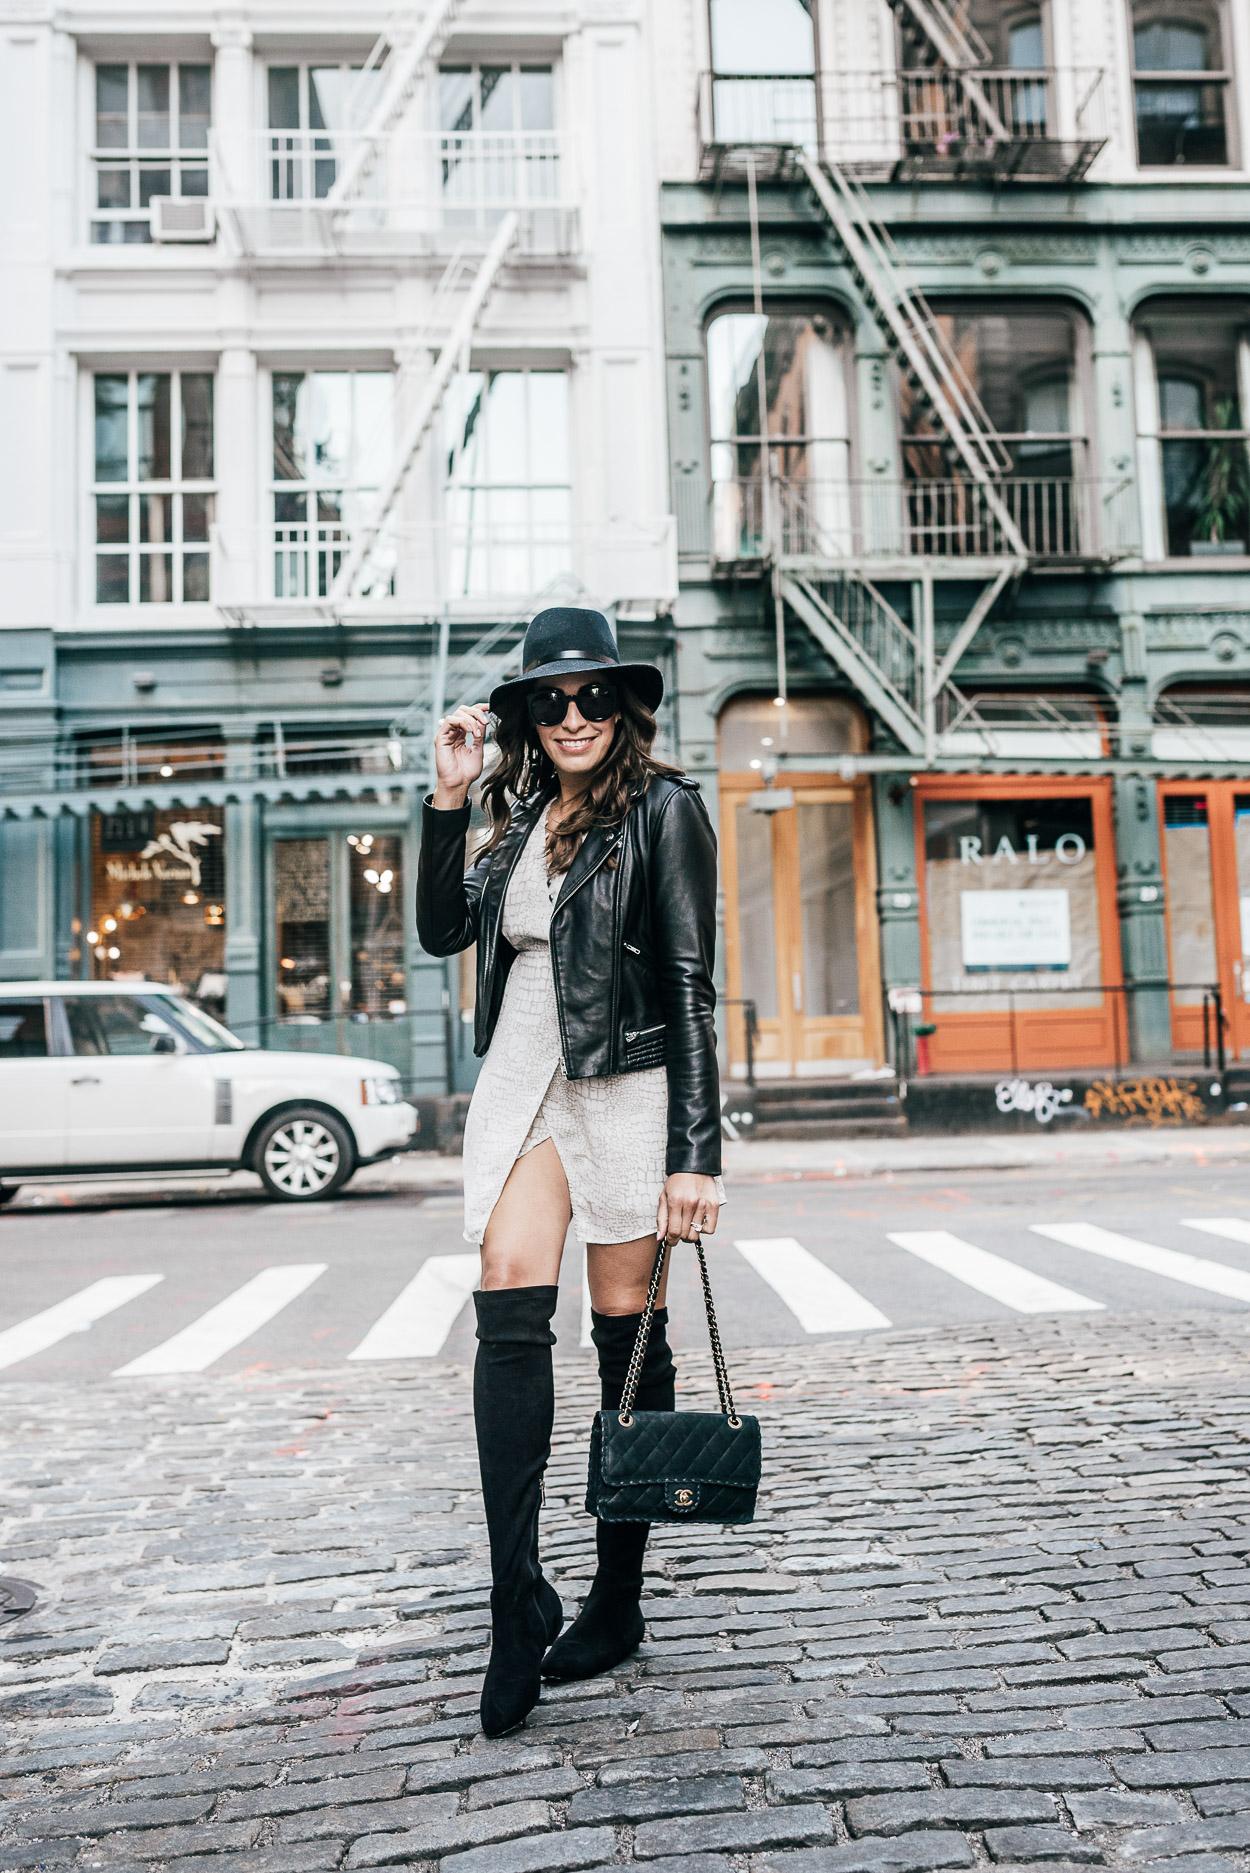 Gentle Fawn Elijah faux wrap dress is styled by AGlamLifestyle blogger Amanda with classic Chanel bag and Maje leather jacket during NYFW in Soho